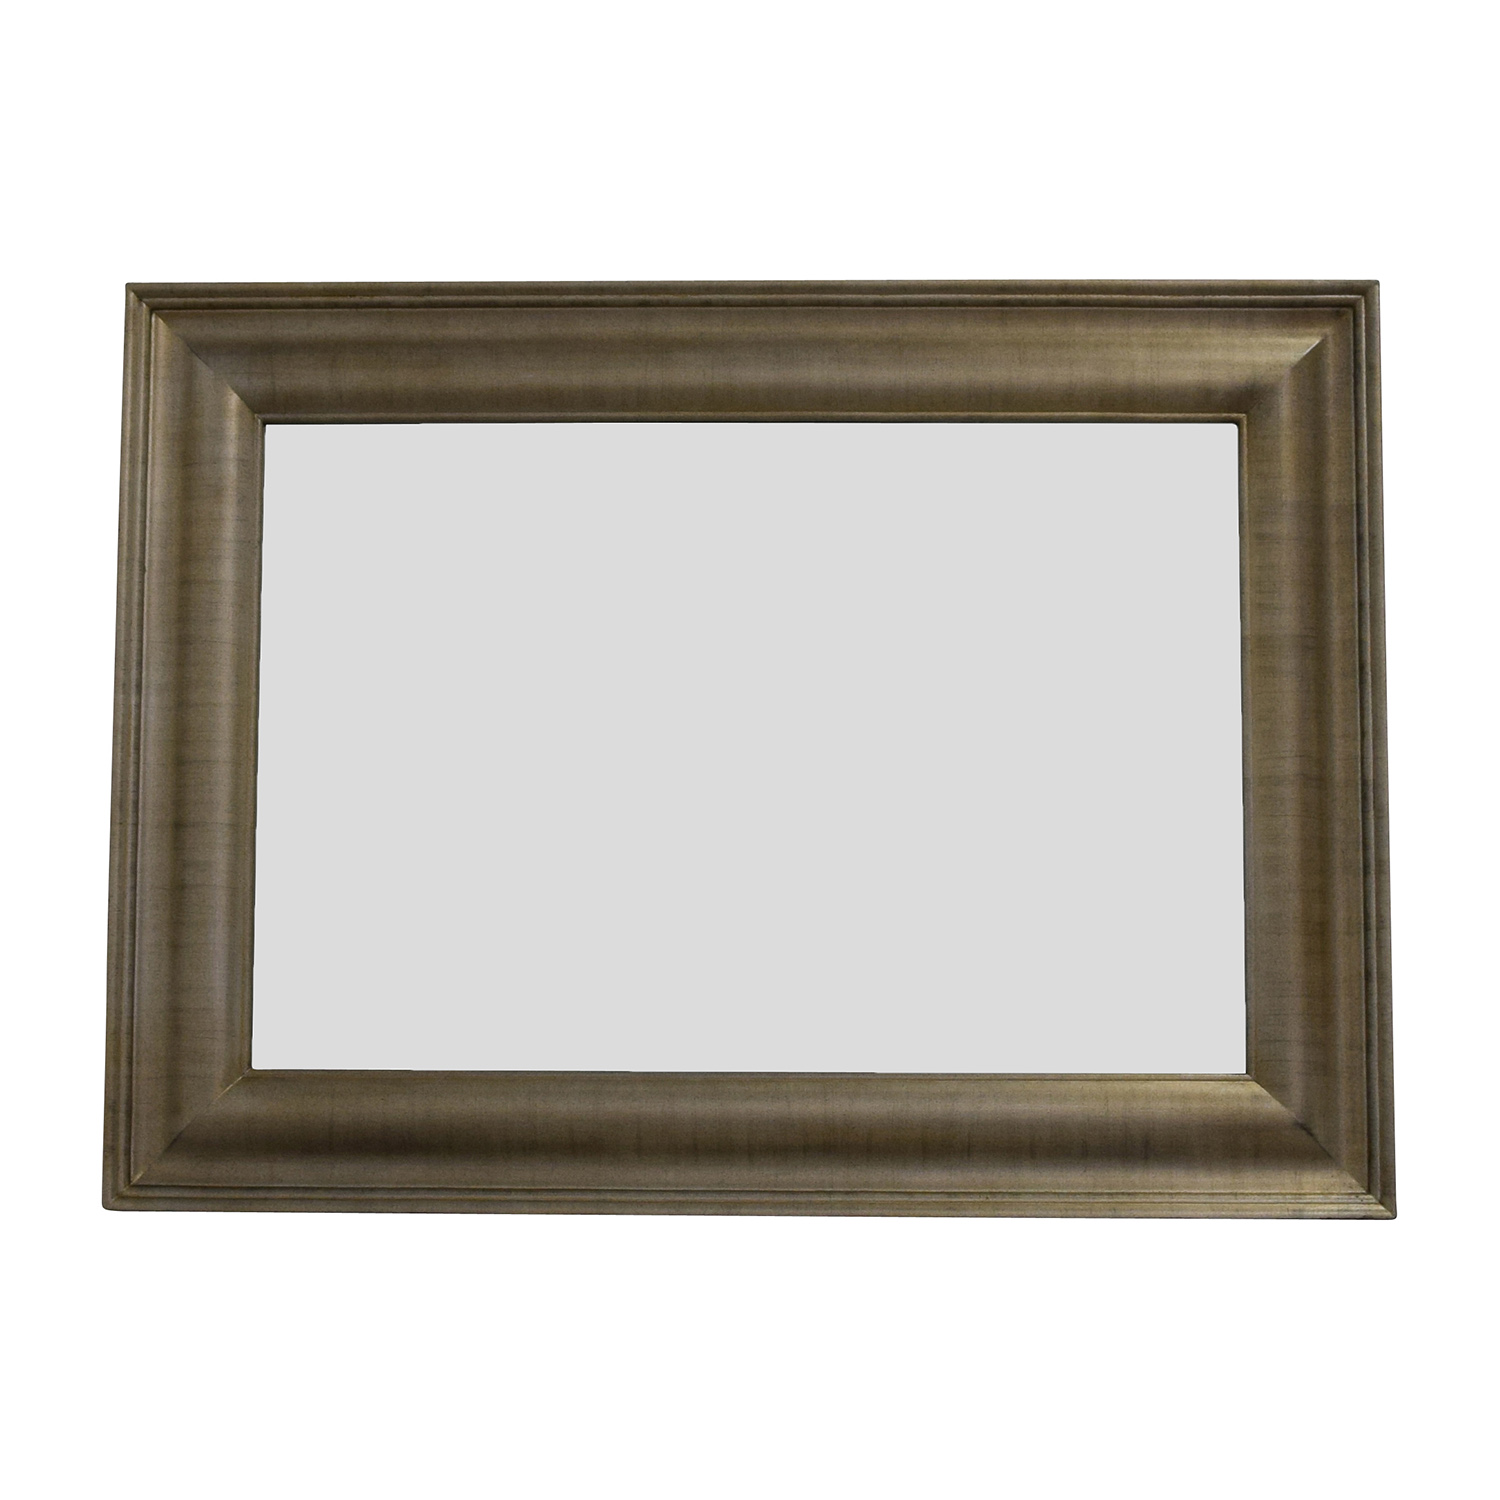 buy The Bombay Company Geffye Wall Mirror The Bombay Company Decor